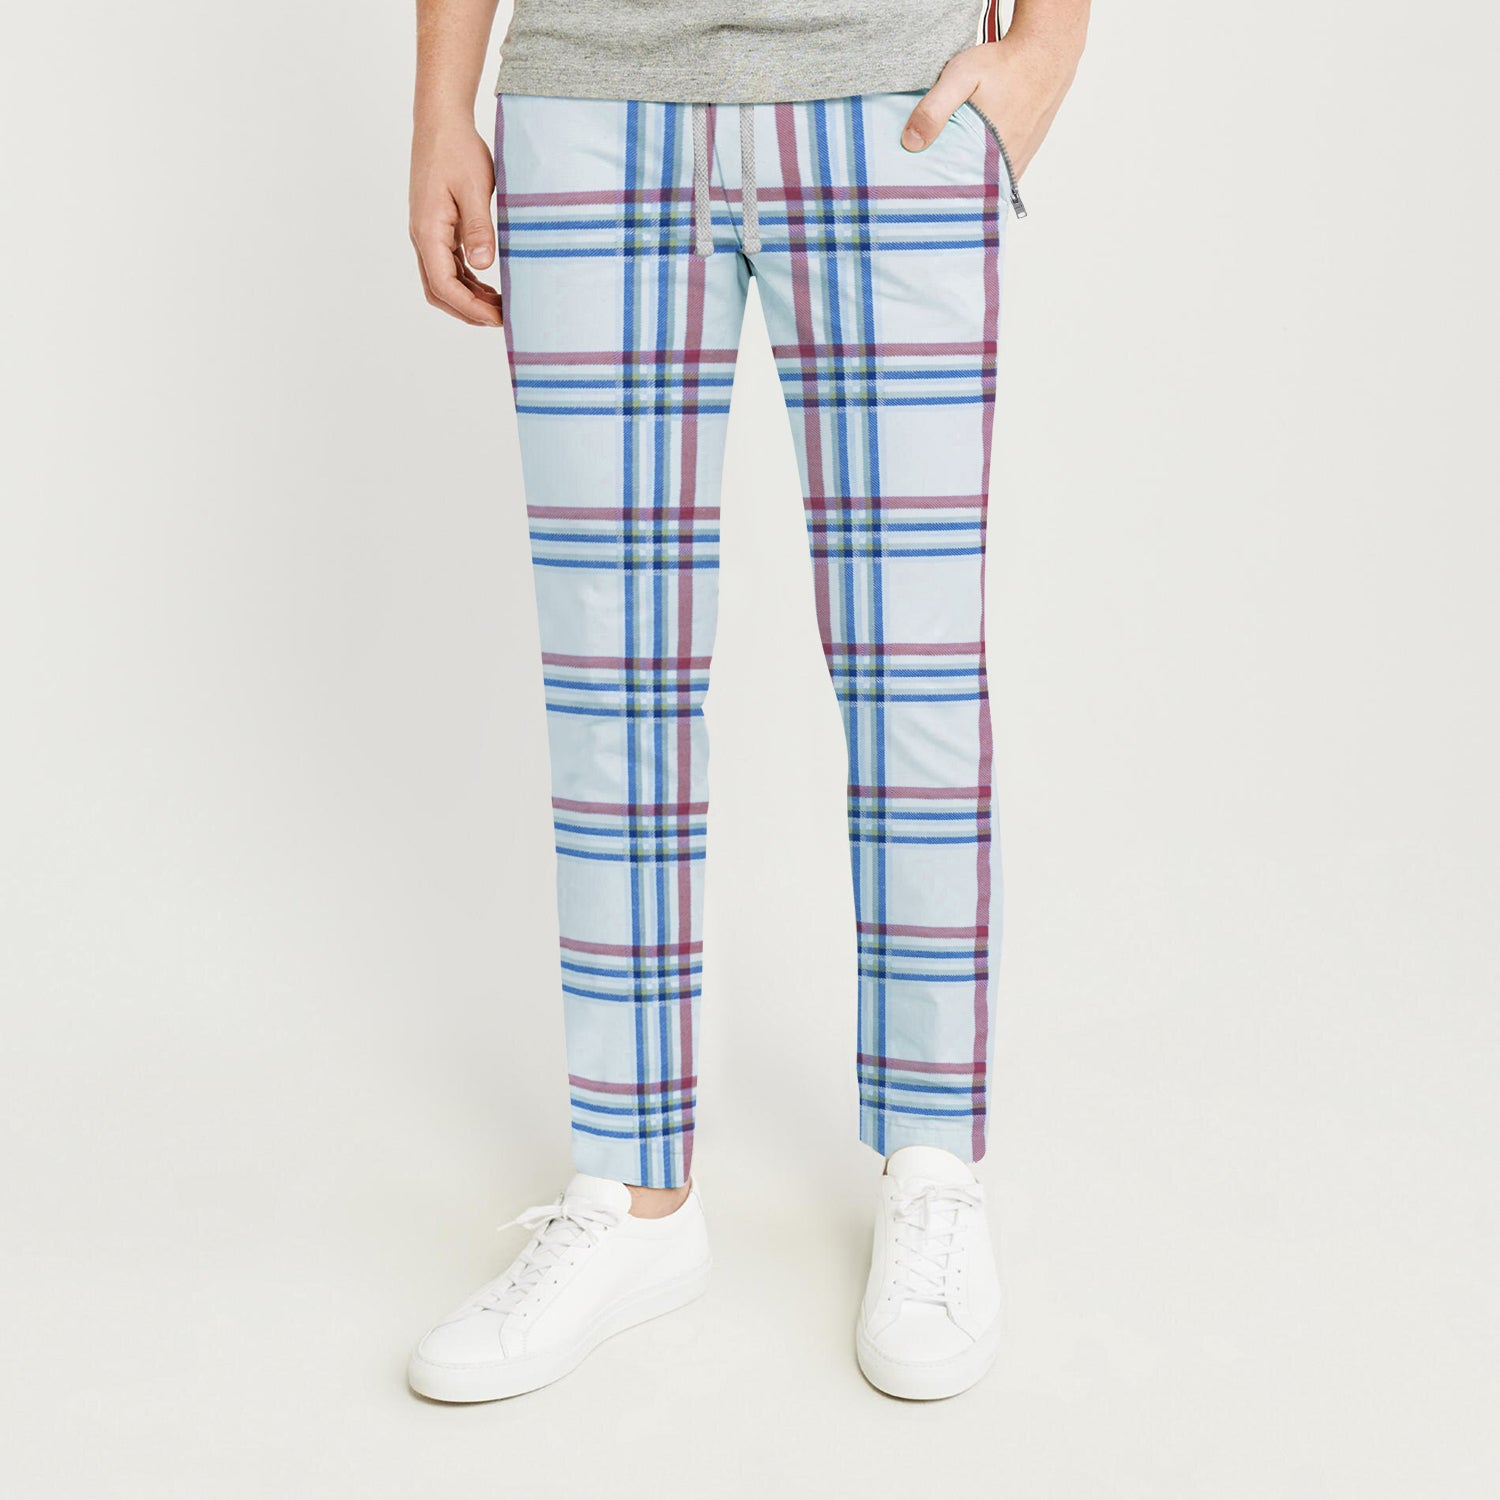 Zara Man Slim Fit Flannel Trouser For Men-Sky with Stripes-BE9807